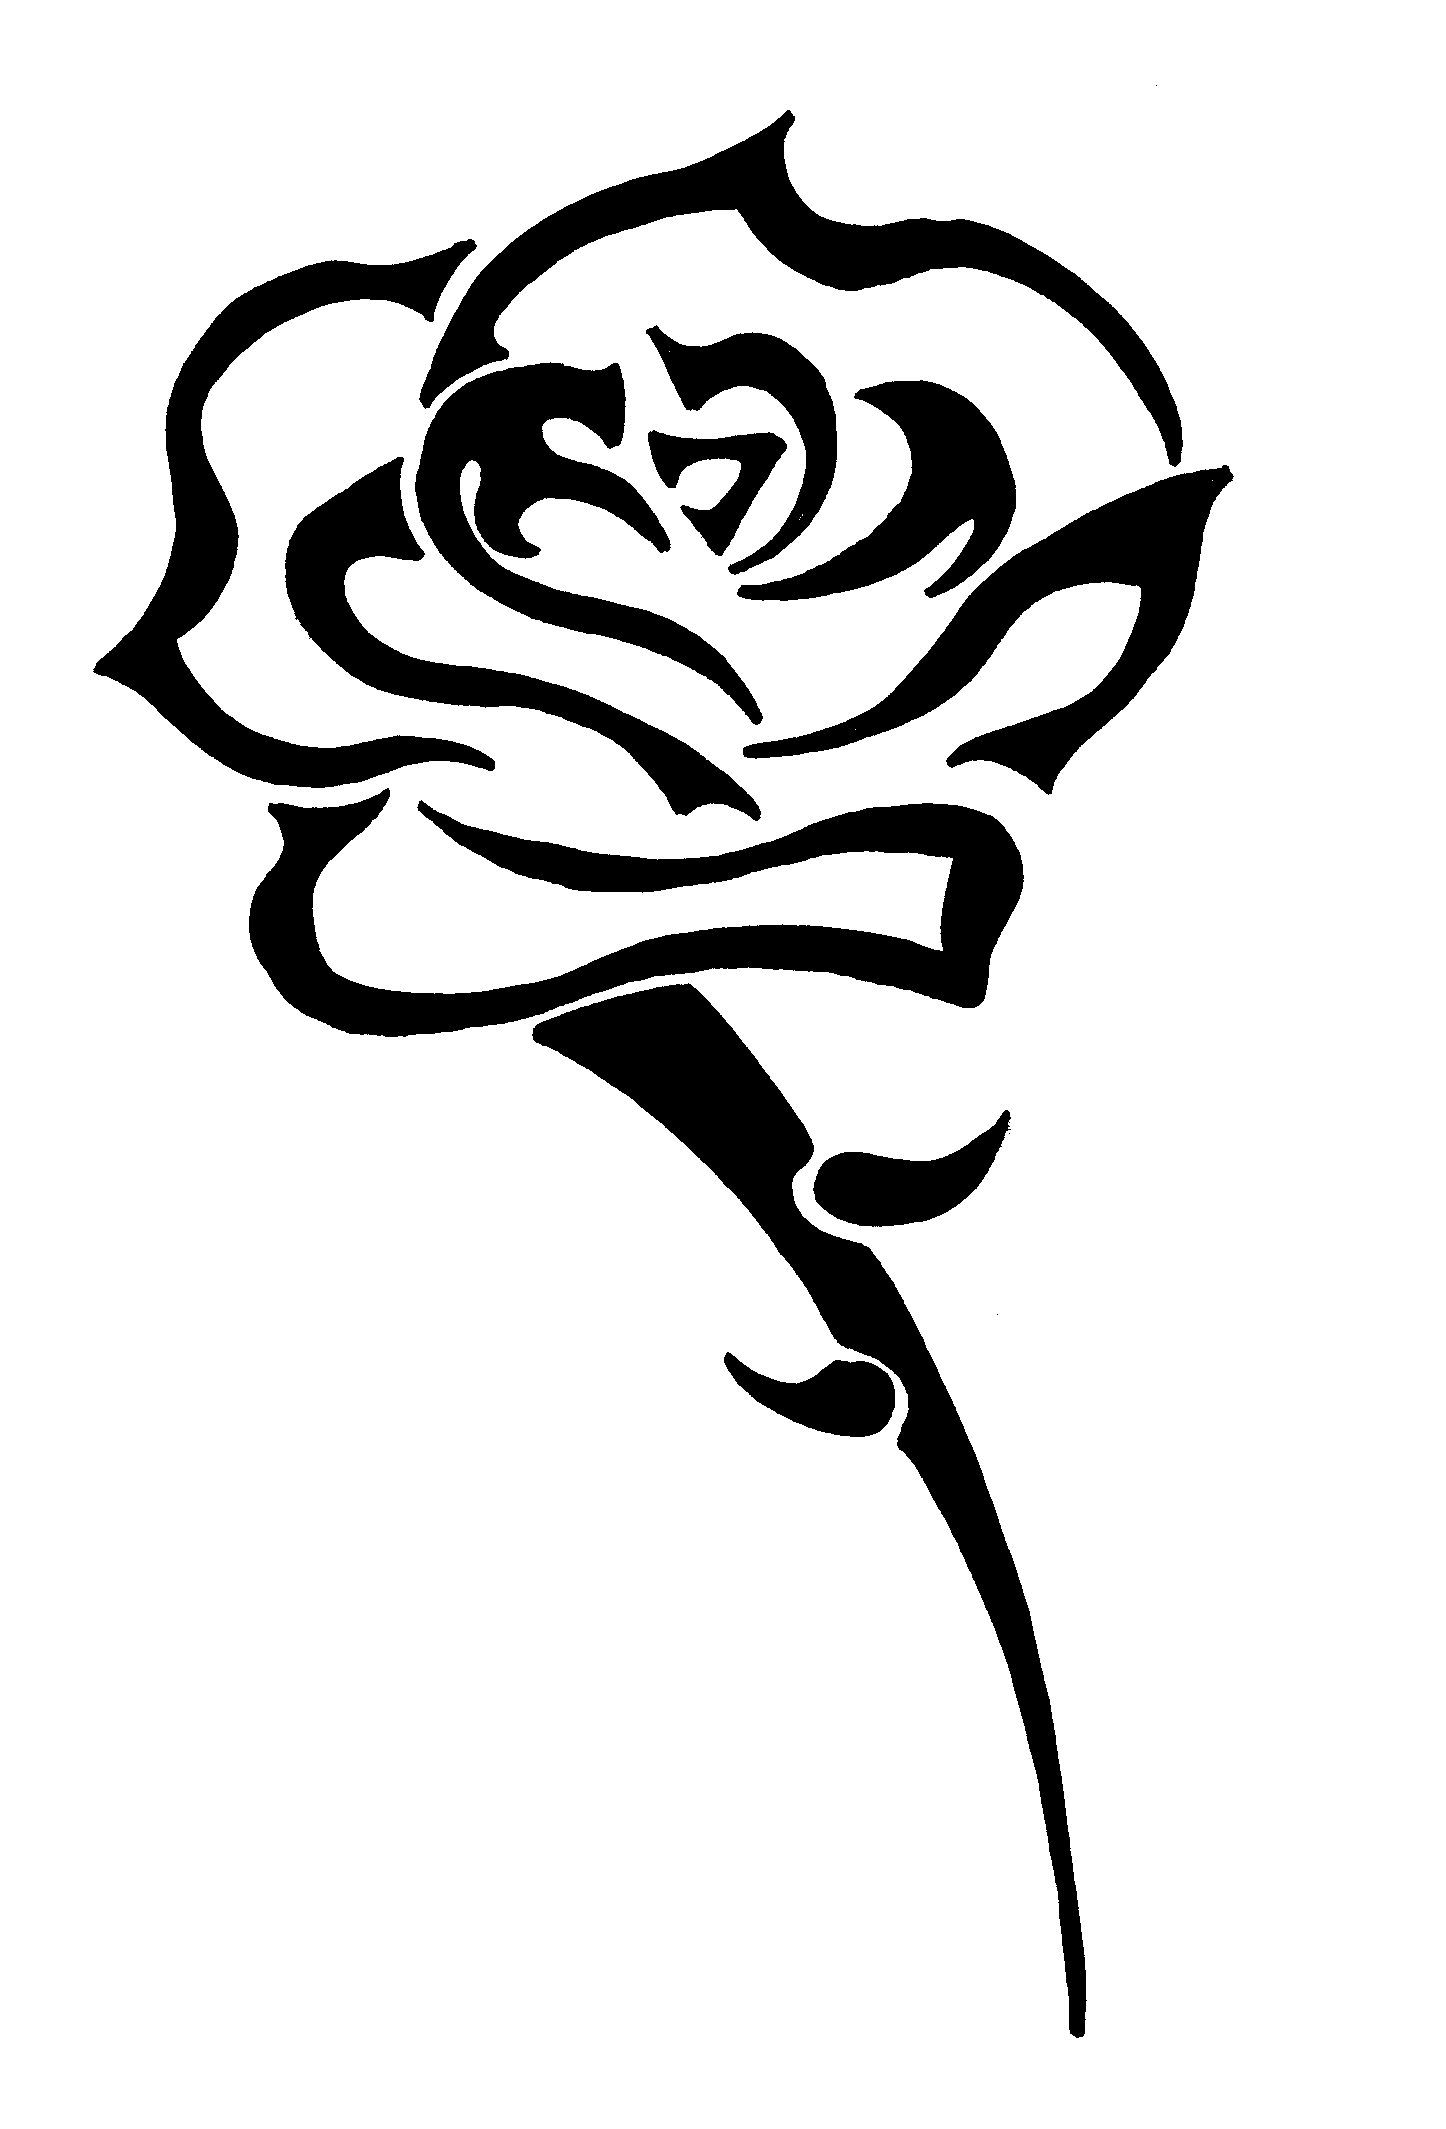 Tribal Rose Tattoo By Carlosiii On Deviantart In 2020 Tribal Rose Tattoos Tribal Rose Celtic Tattoos,Solution Design Group